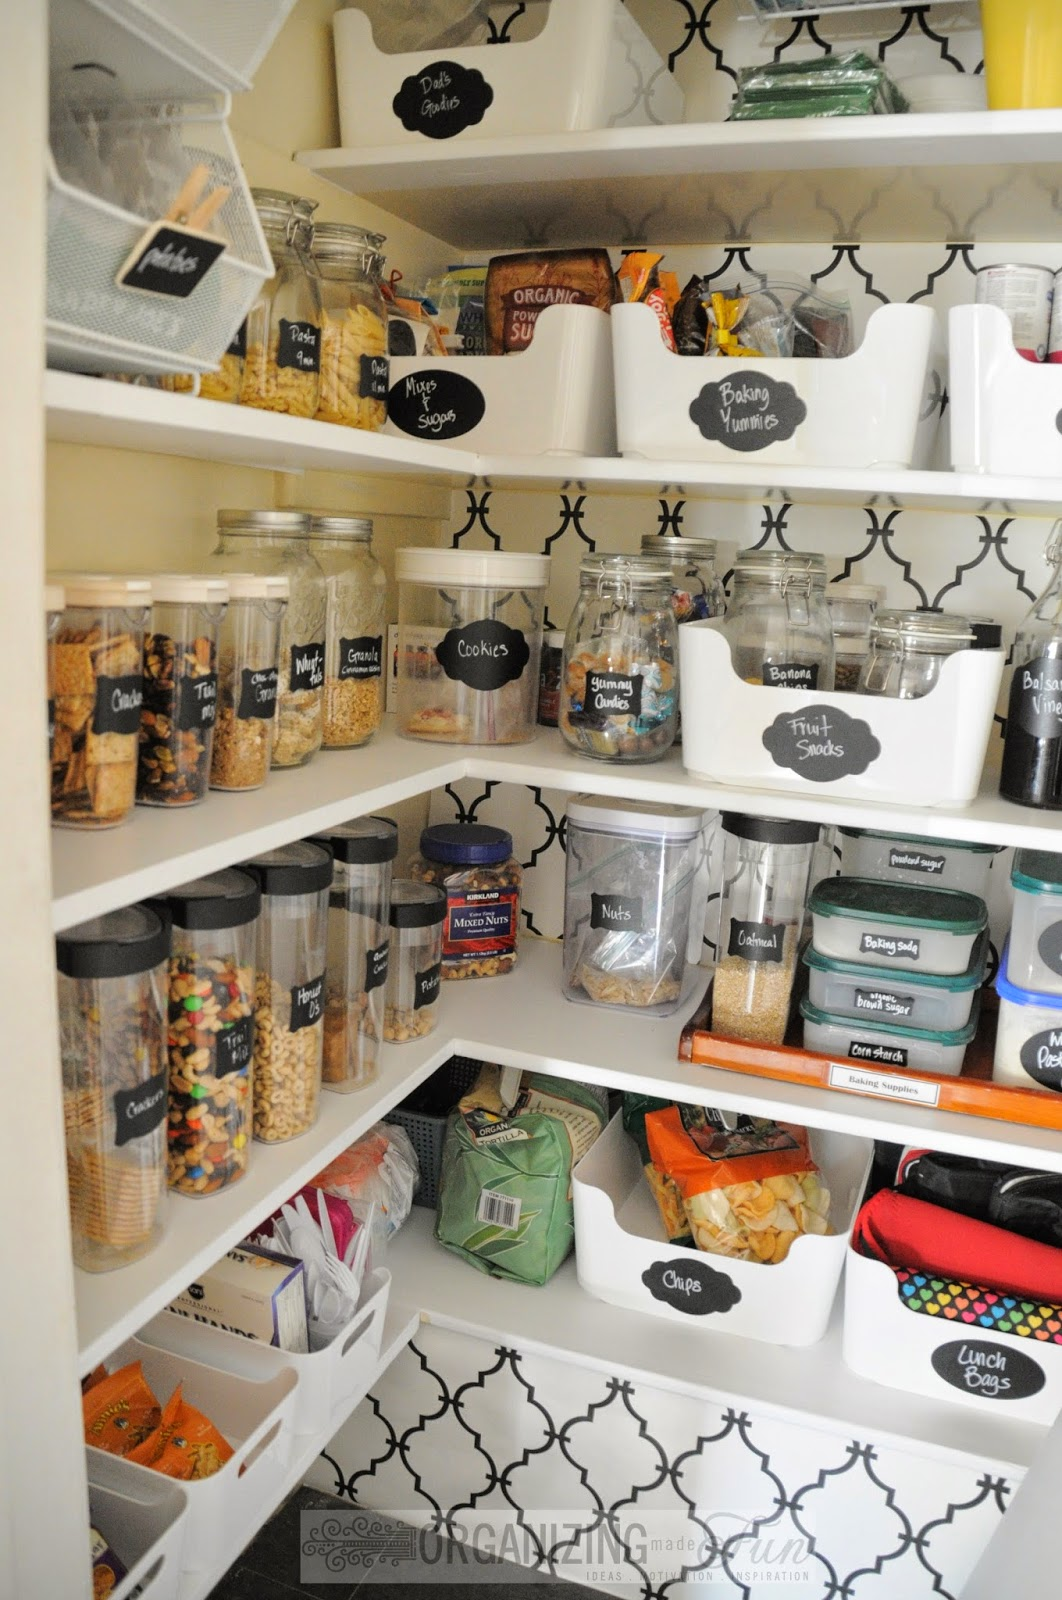 Pantry organization inspiration organizing made fun for Organization ideas for kitchen pantry